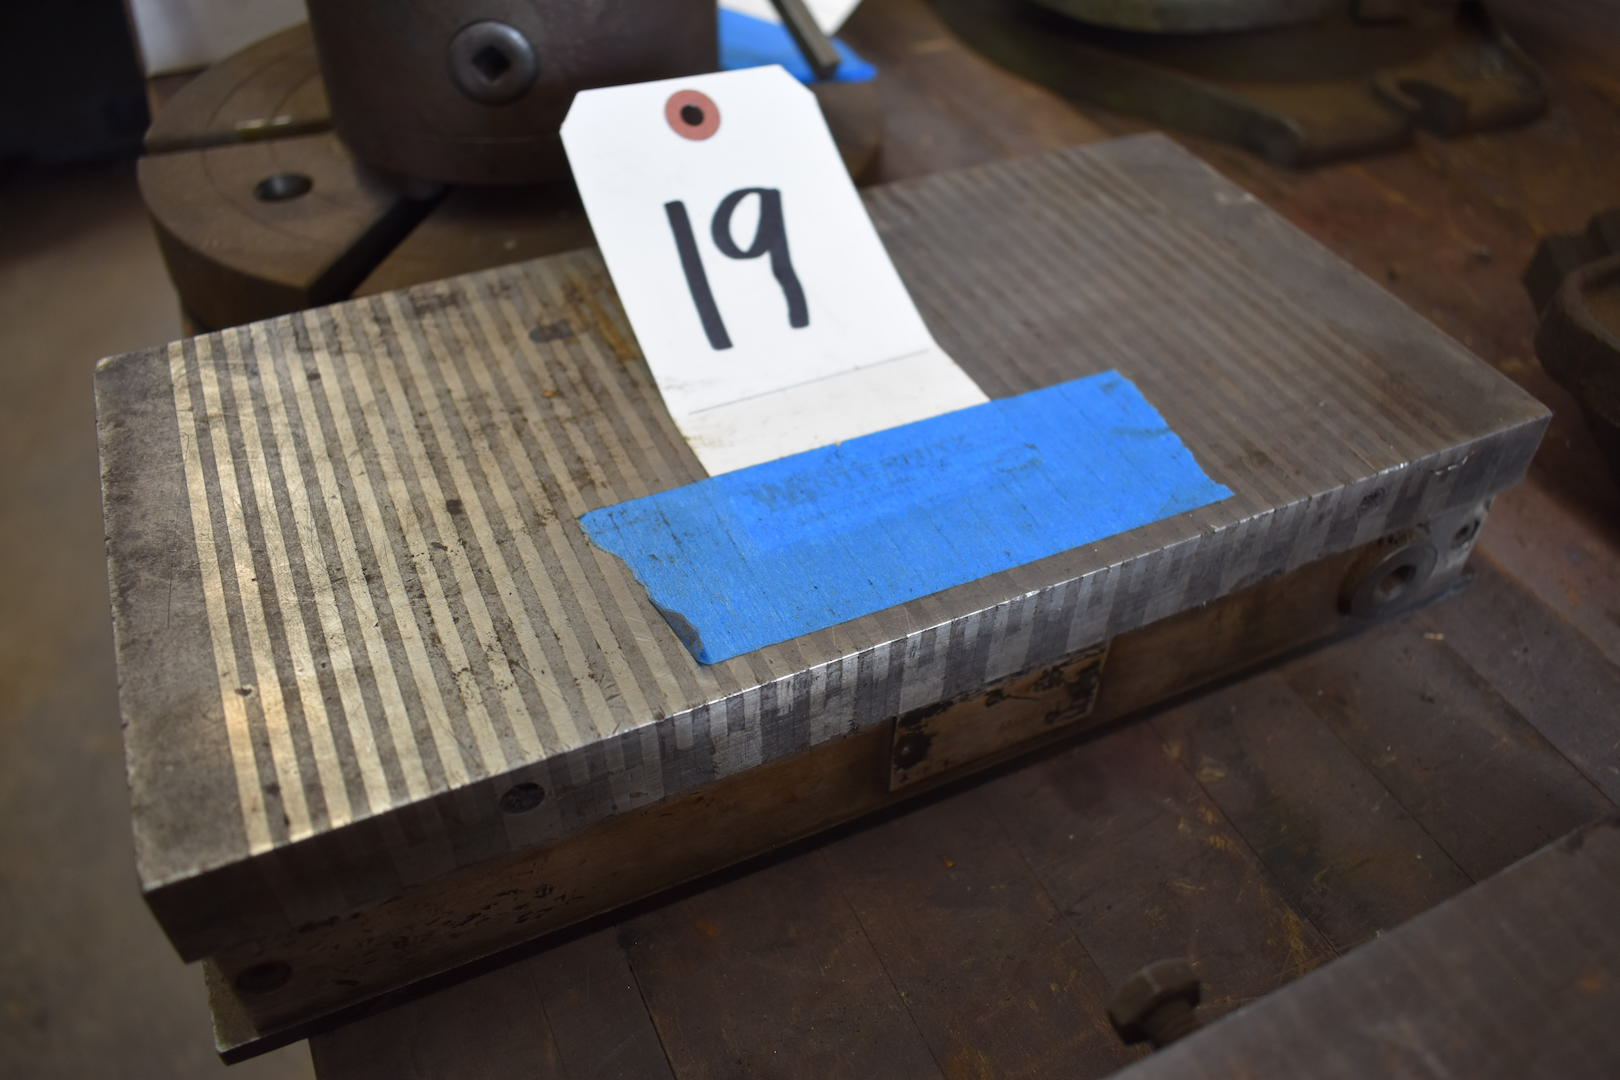 Lot 19 - 6 in. x 12 in. Magnetic Chuck